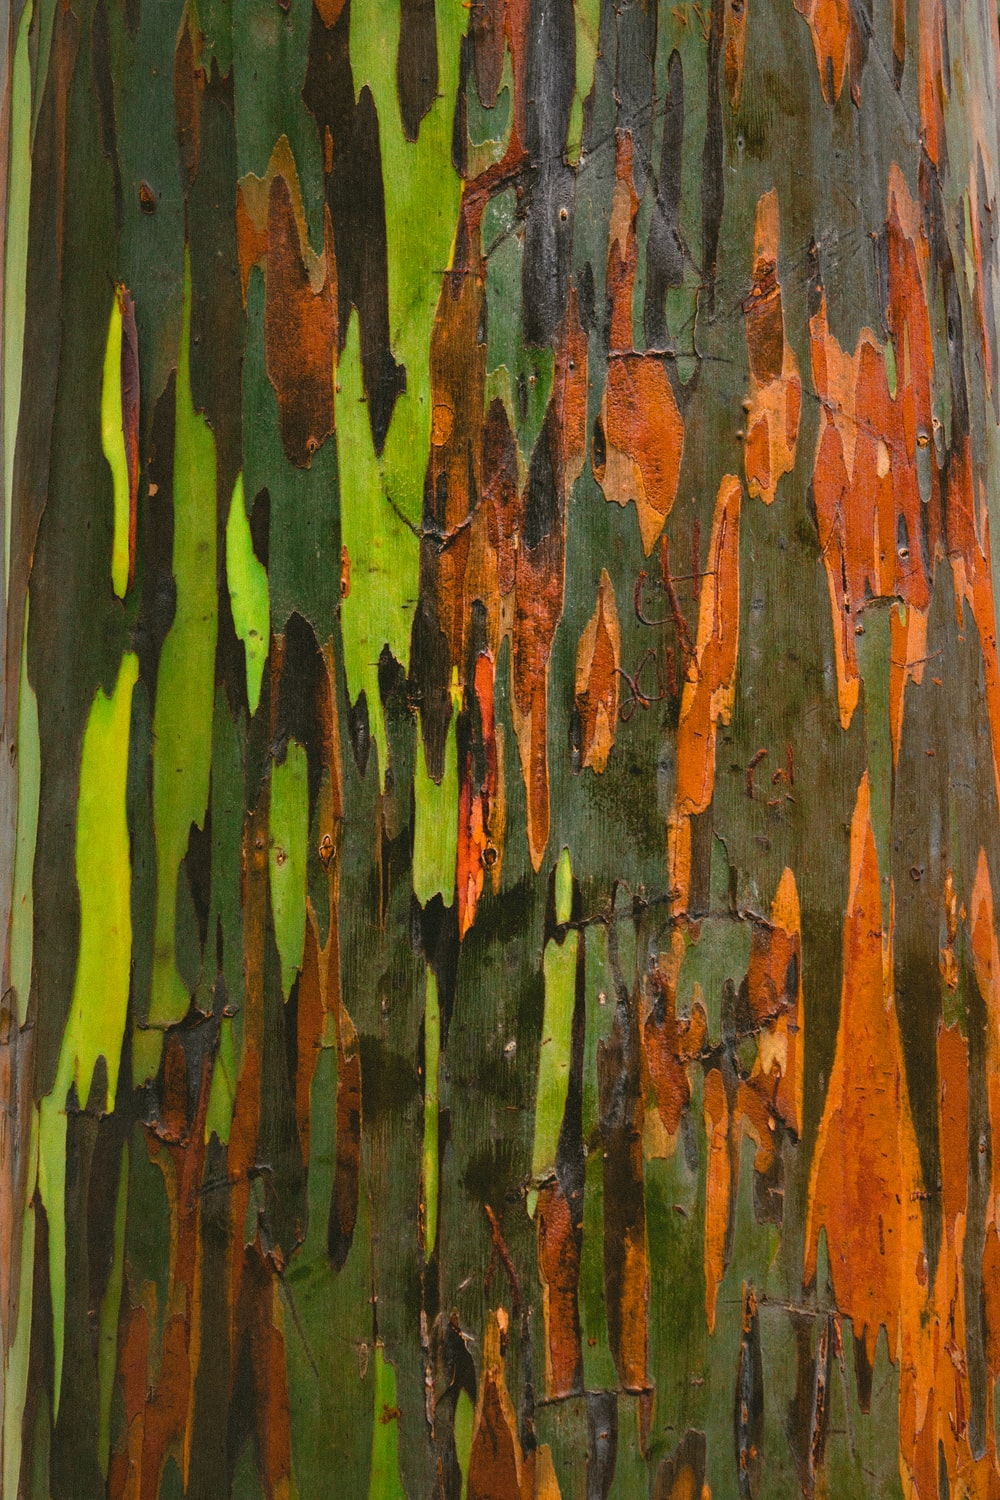 Green Orange And Black Abstract Painting Photo Free